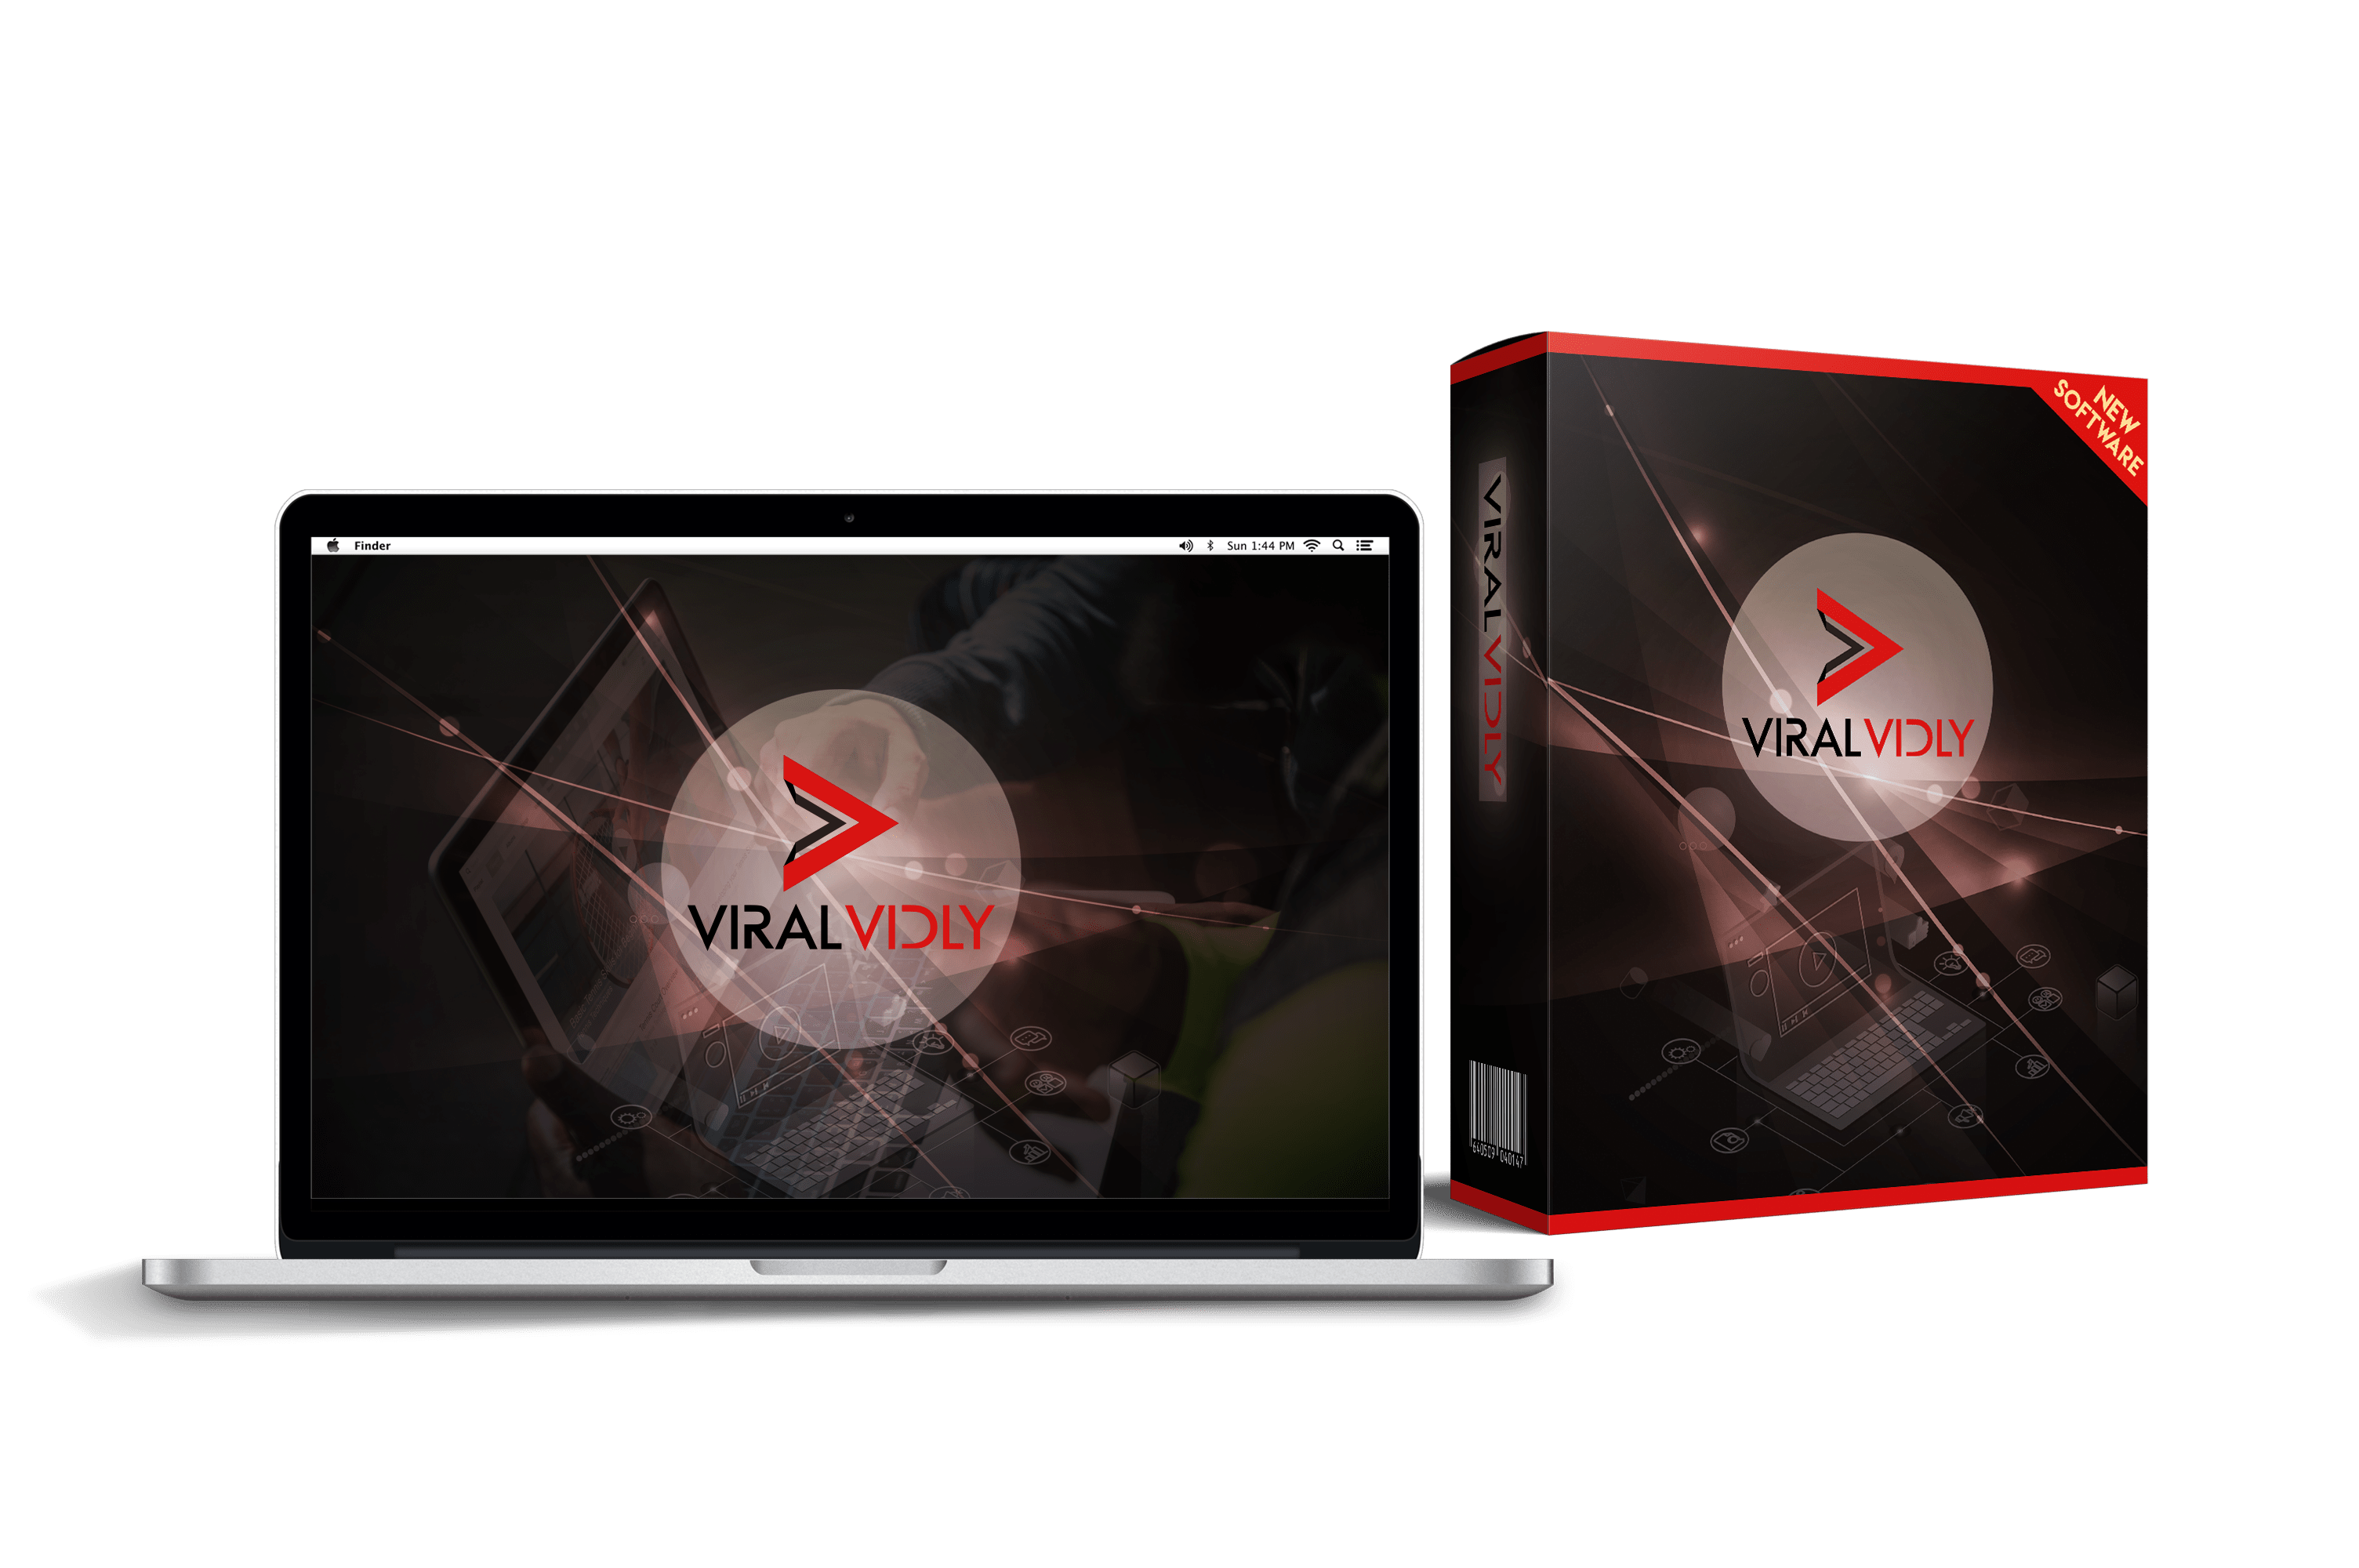 Viral Vidly Review